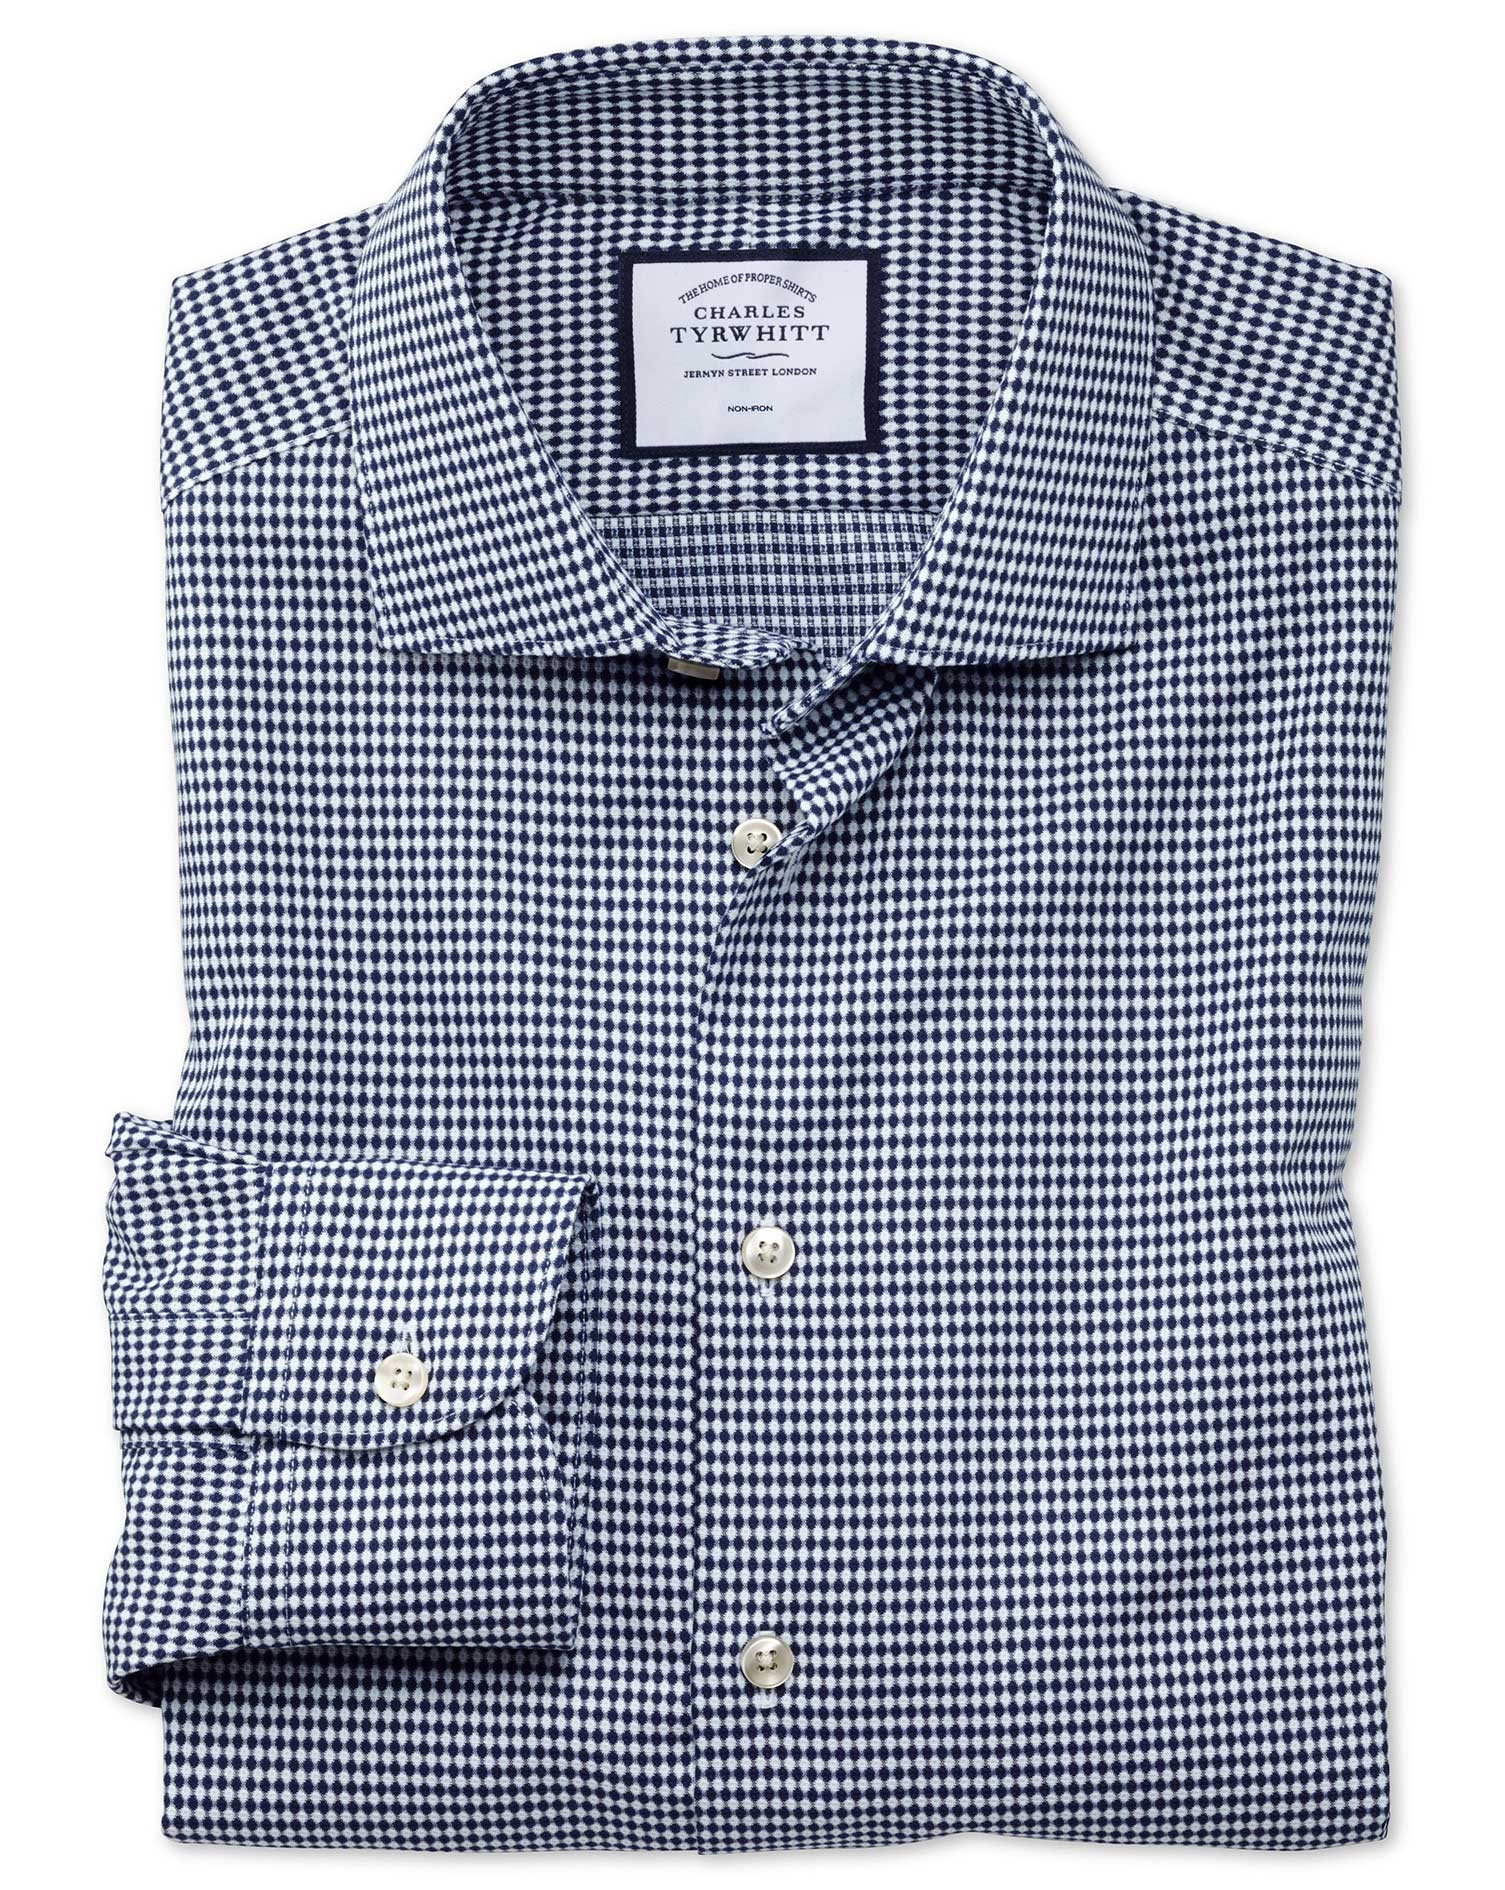 Slim Fit Business Casual Non-Iron Navy Oval Dobby Cotton Formal Shirt Single Cuff Size 16/34 by Char